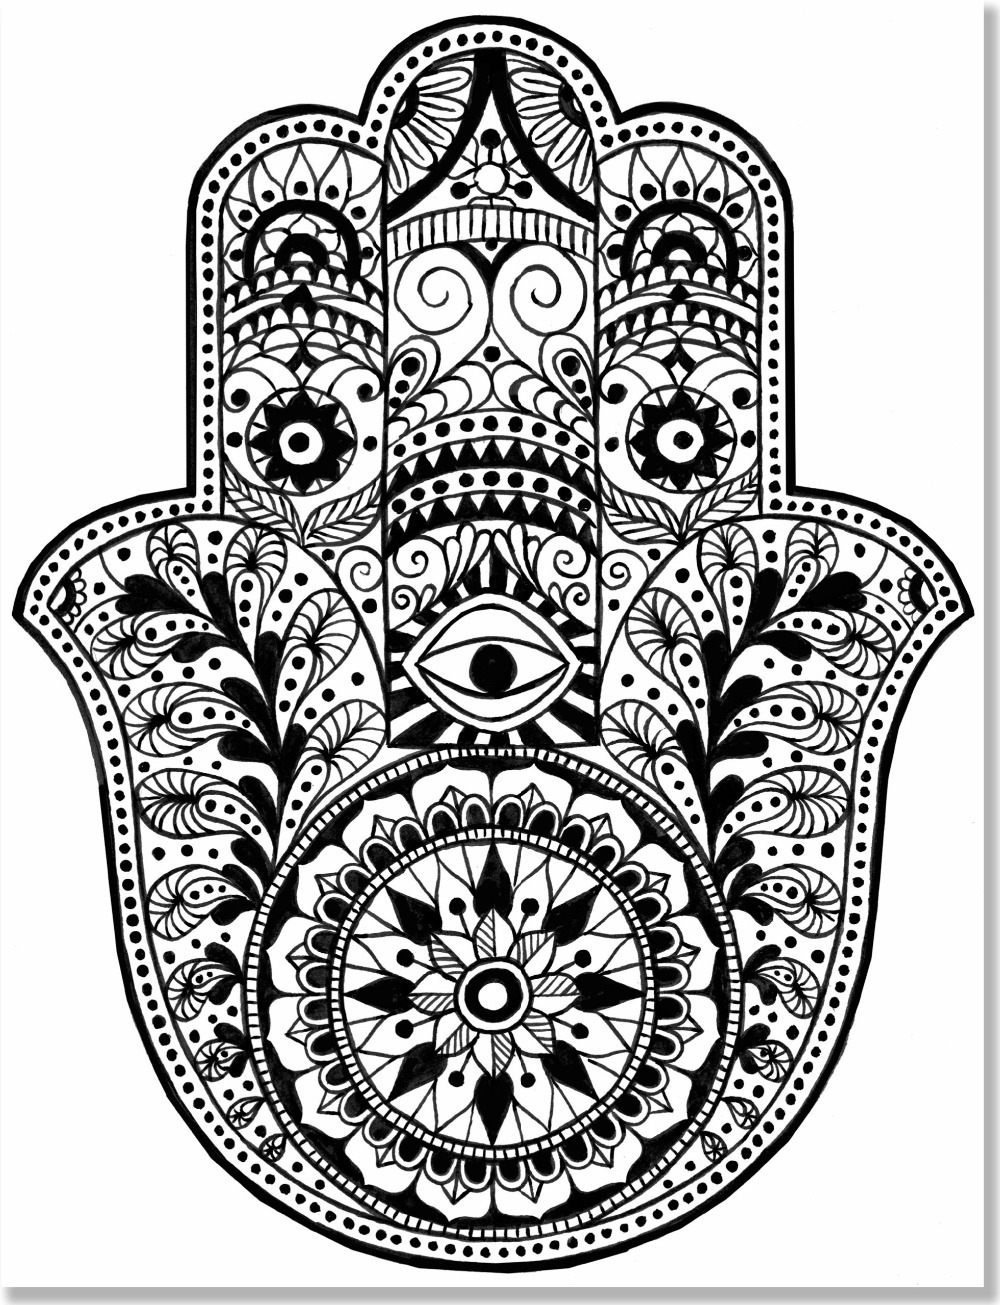 Stress relief coloring books disney - Aliexpress Com Buy Mandala Designs Coloring Book 31 Stress Relieving Designs Studio English Pencil Coloring Book Adult Coloring Books From